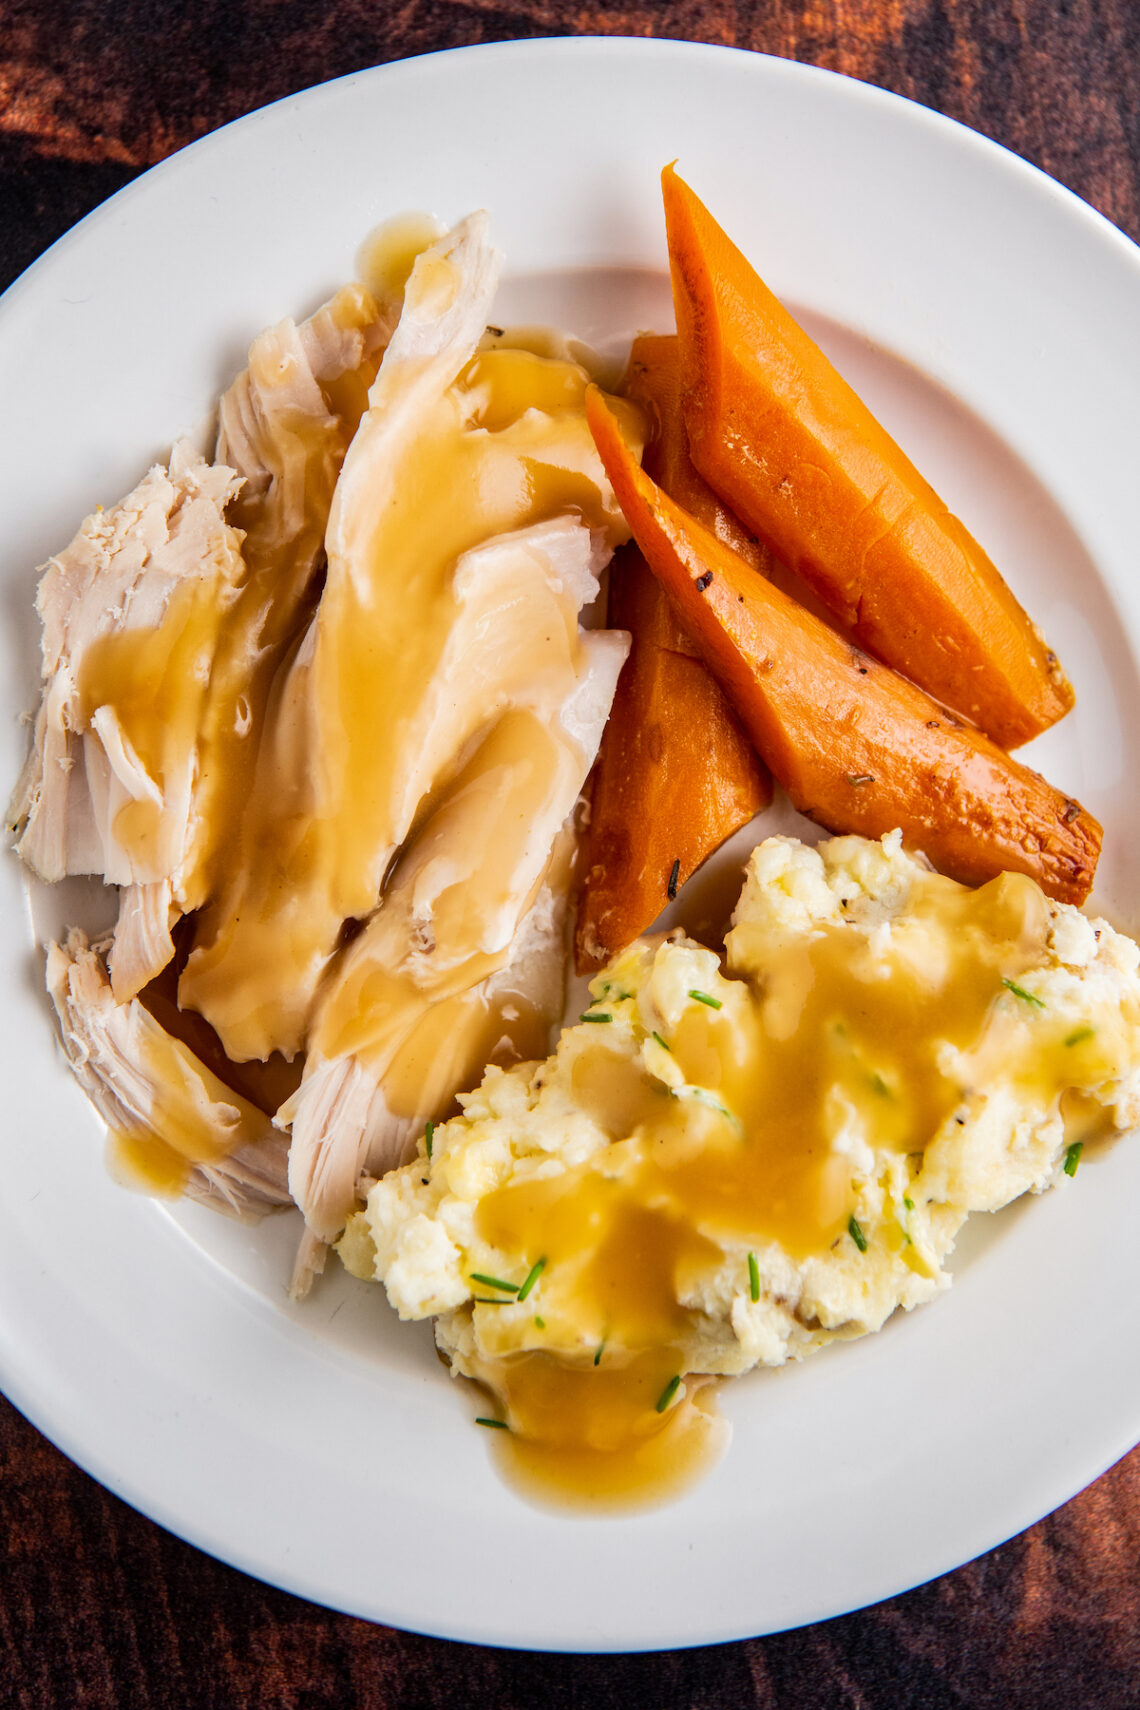 Up close image of turkey breast with gravy, mashed potatoes and carrots on a white plate.